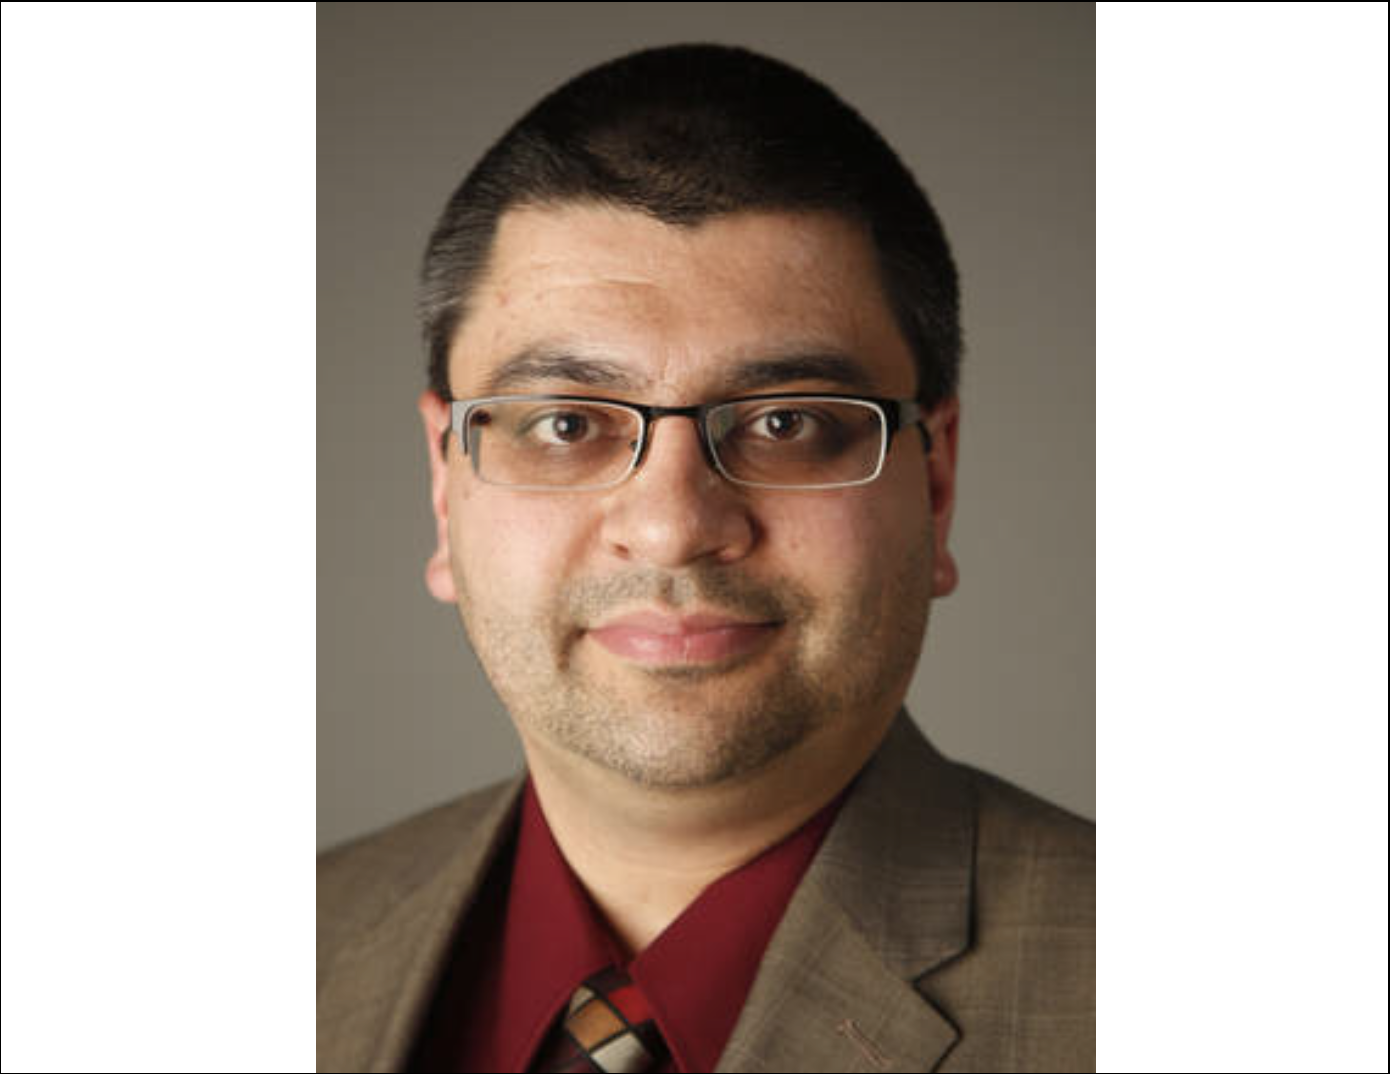 Adam Soltani, the executive director of the Oklahoma chapter of the Council on American-Islamic Relations. Online photo